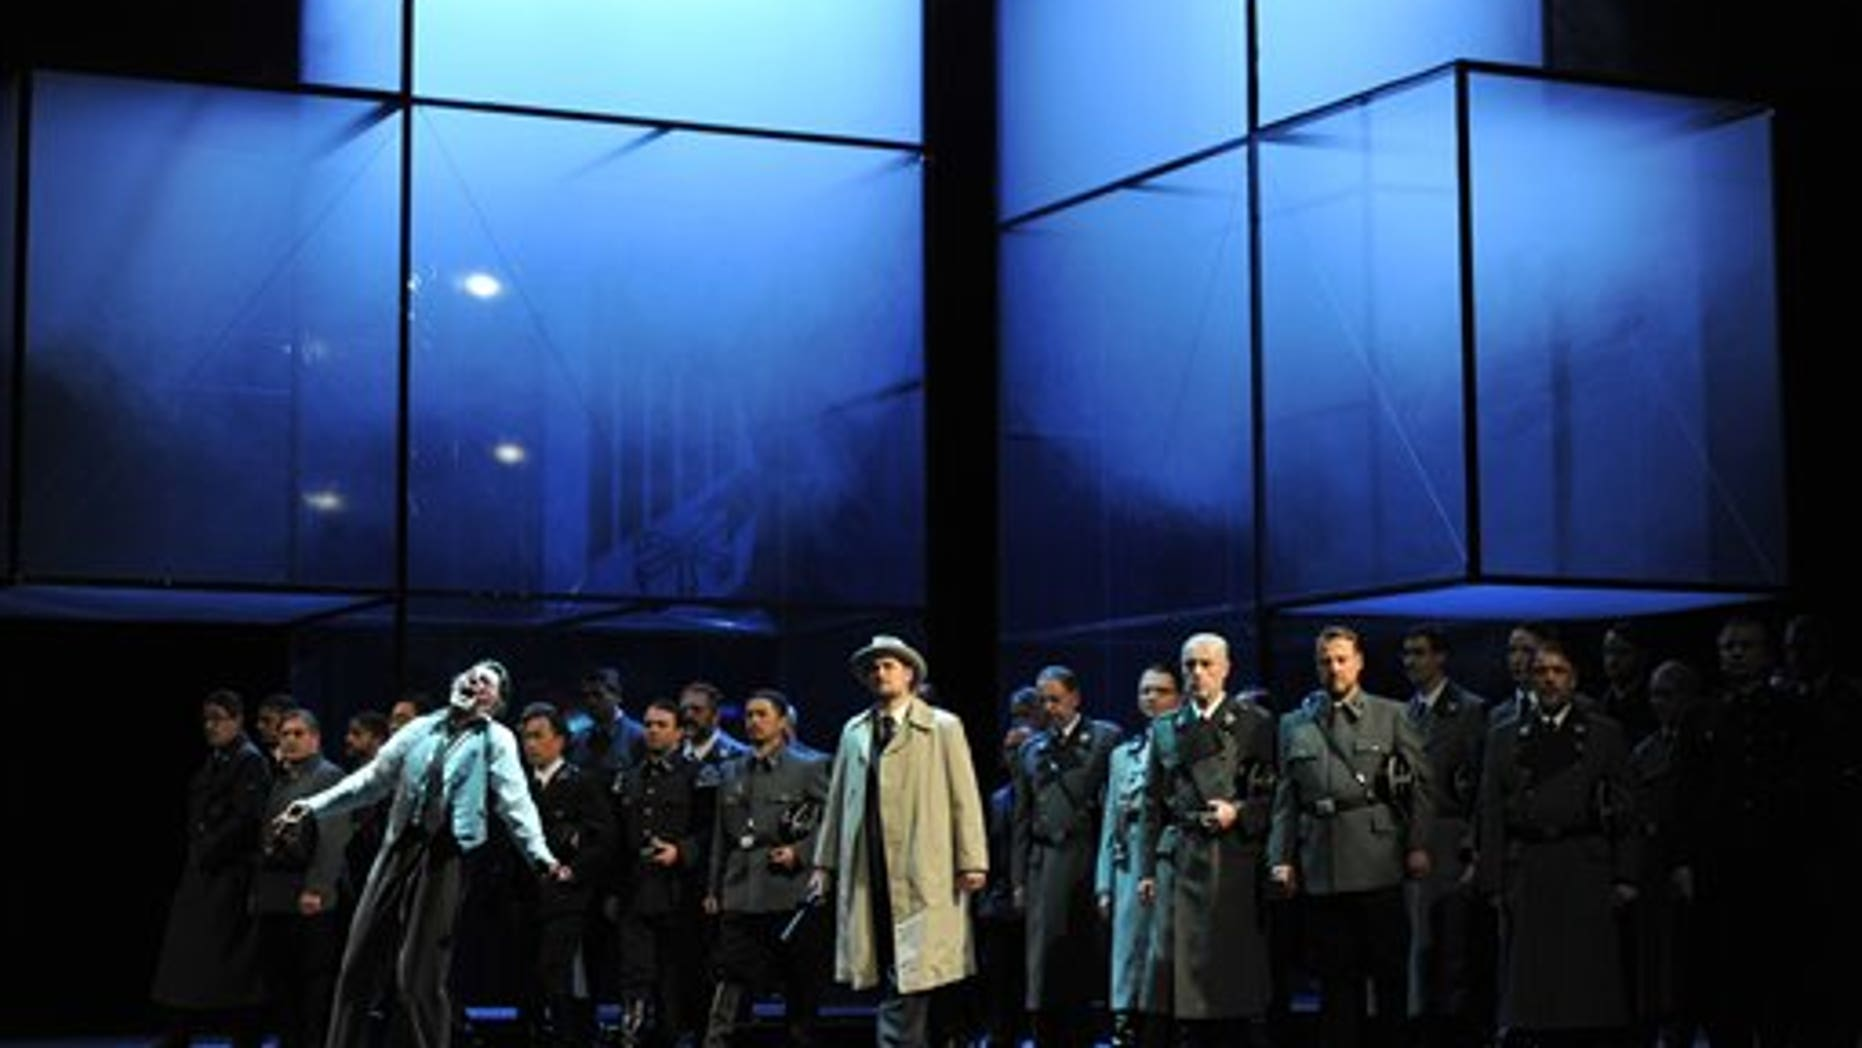 """The photo provided by Deutsche Oper am Rhein in Duesseldorf, western Germany, shows Markus Eiche, left, as Wolfram and Thorsten Gruembel as Landgraf performing in front of the choir in a scene of the the opera """"Tannhaeuser"""" during the dress rehearsal on April 30, 2013."""